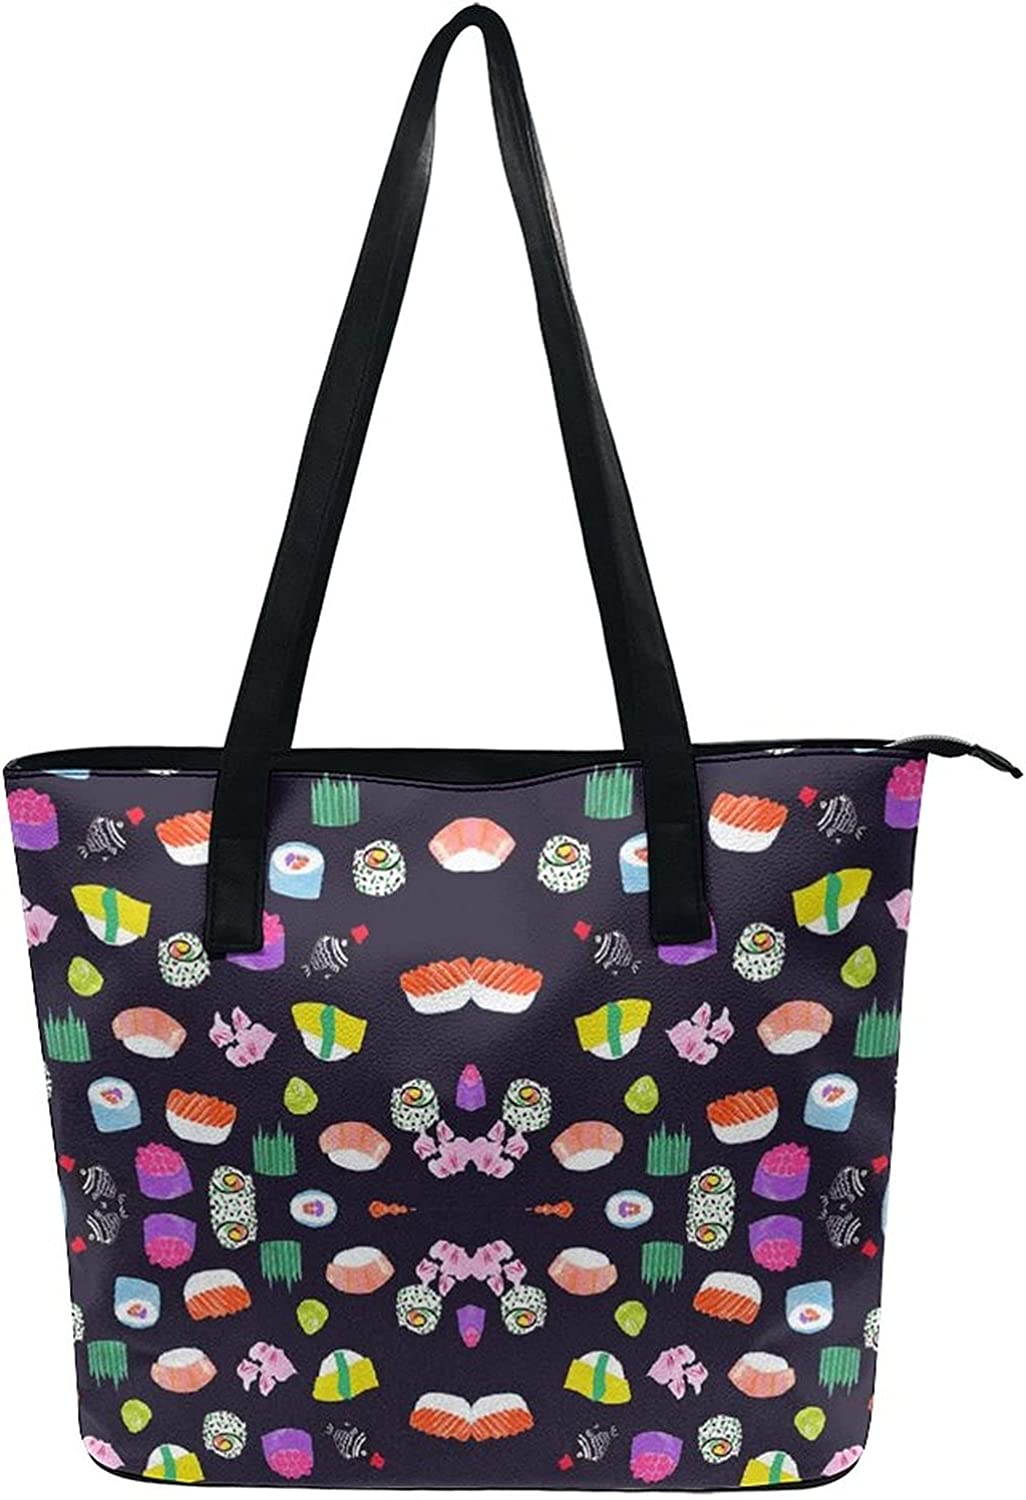 Tote Satchel Bag Shoulder Beach Bags For Women Lady Classic Shopping Bags